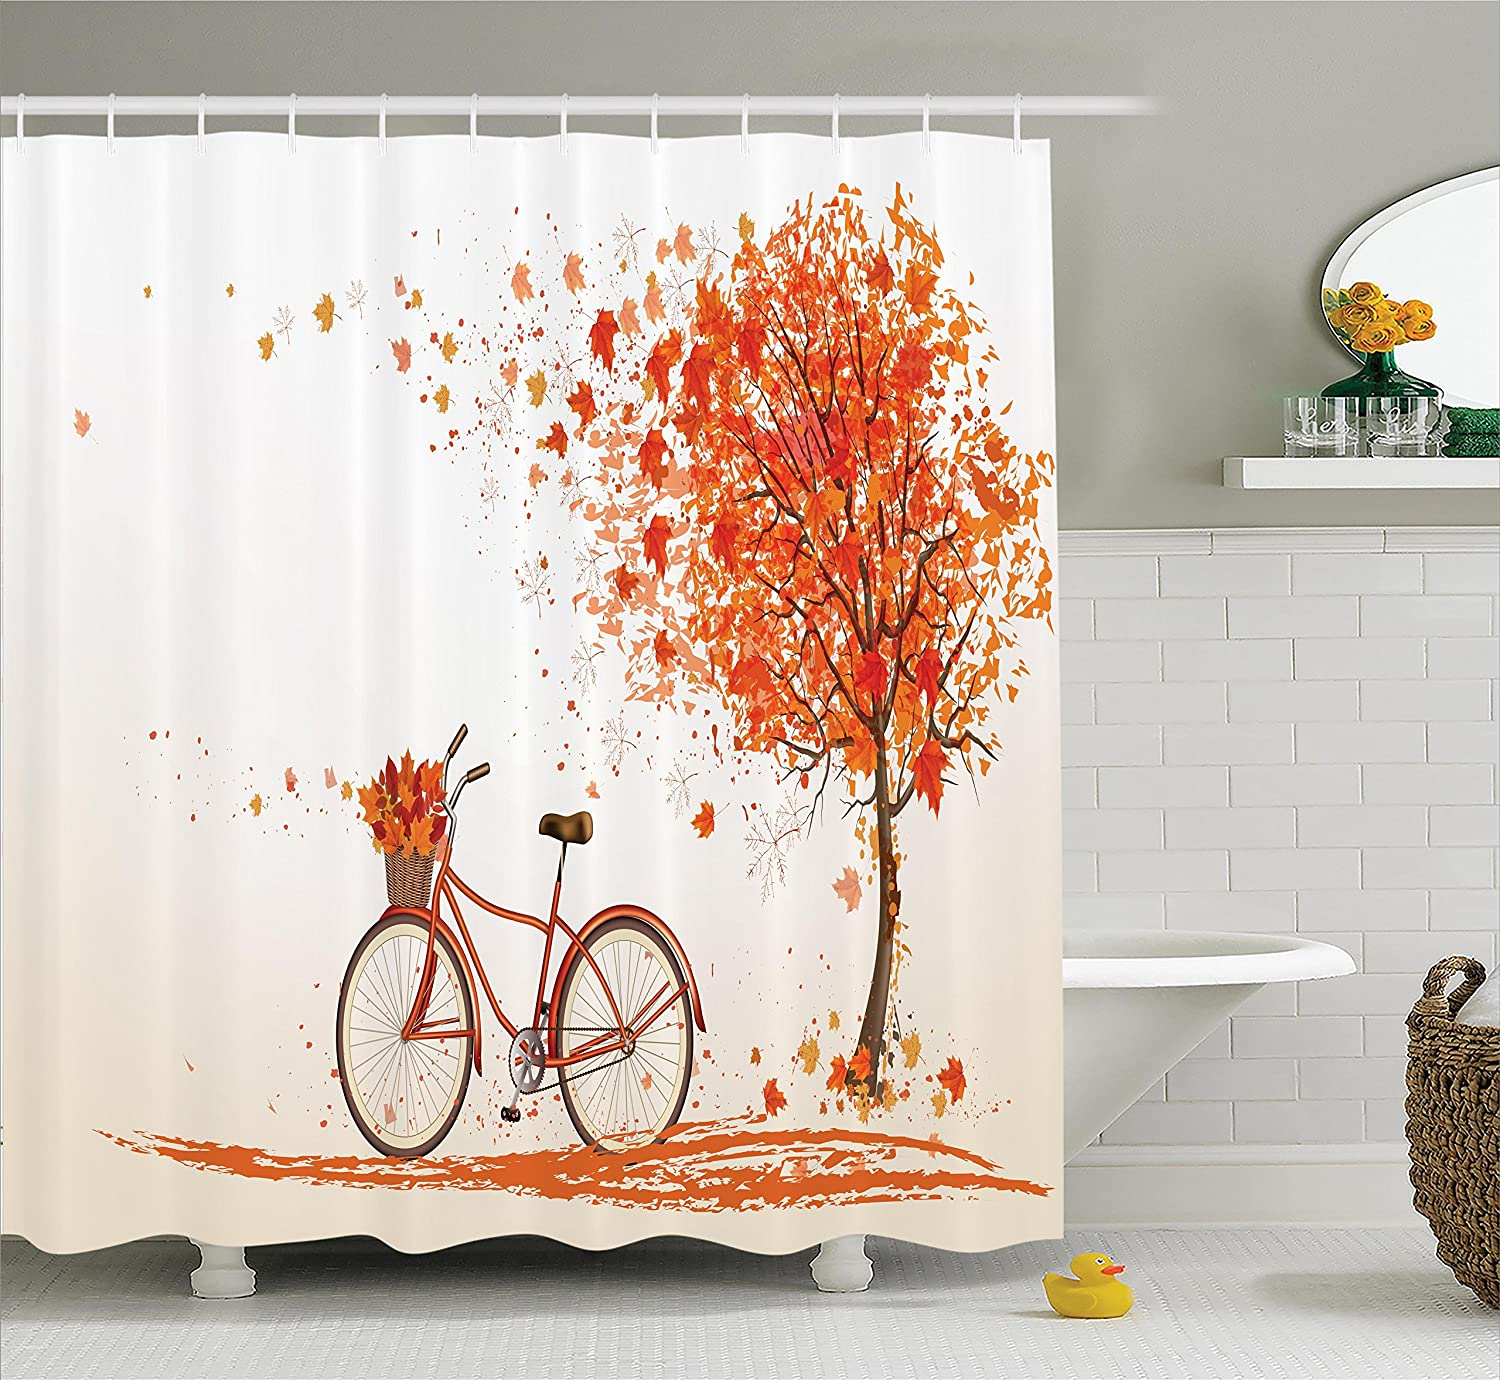 Ambesonne Bicycle Shower Curtain Autumn Tree With Aged Old Bike And Fall November Day Season Park Nature Home Decor Polyester Fabric Bathroom